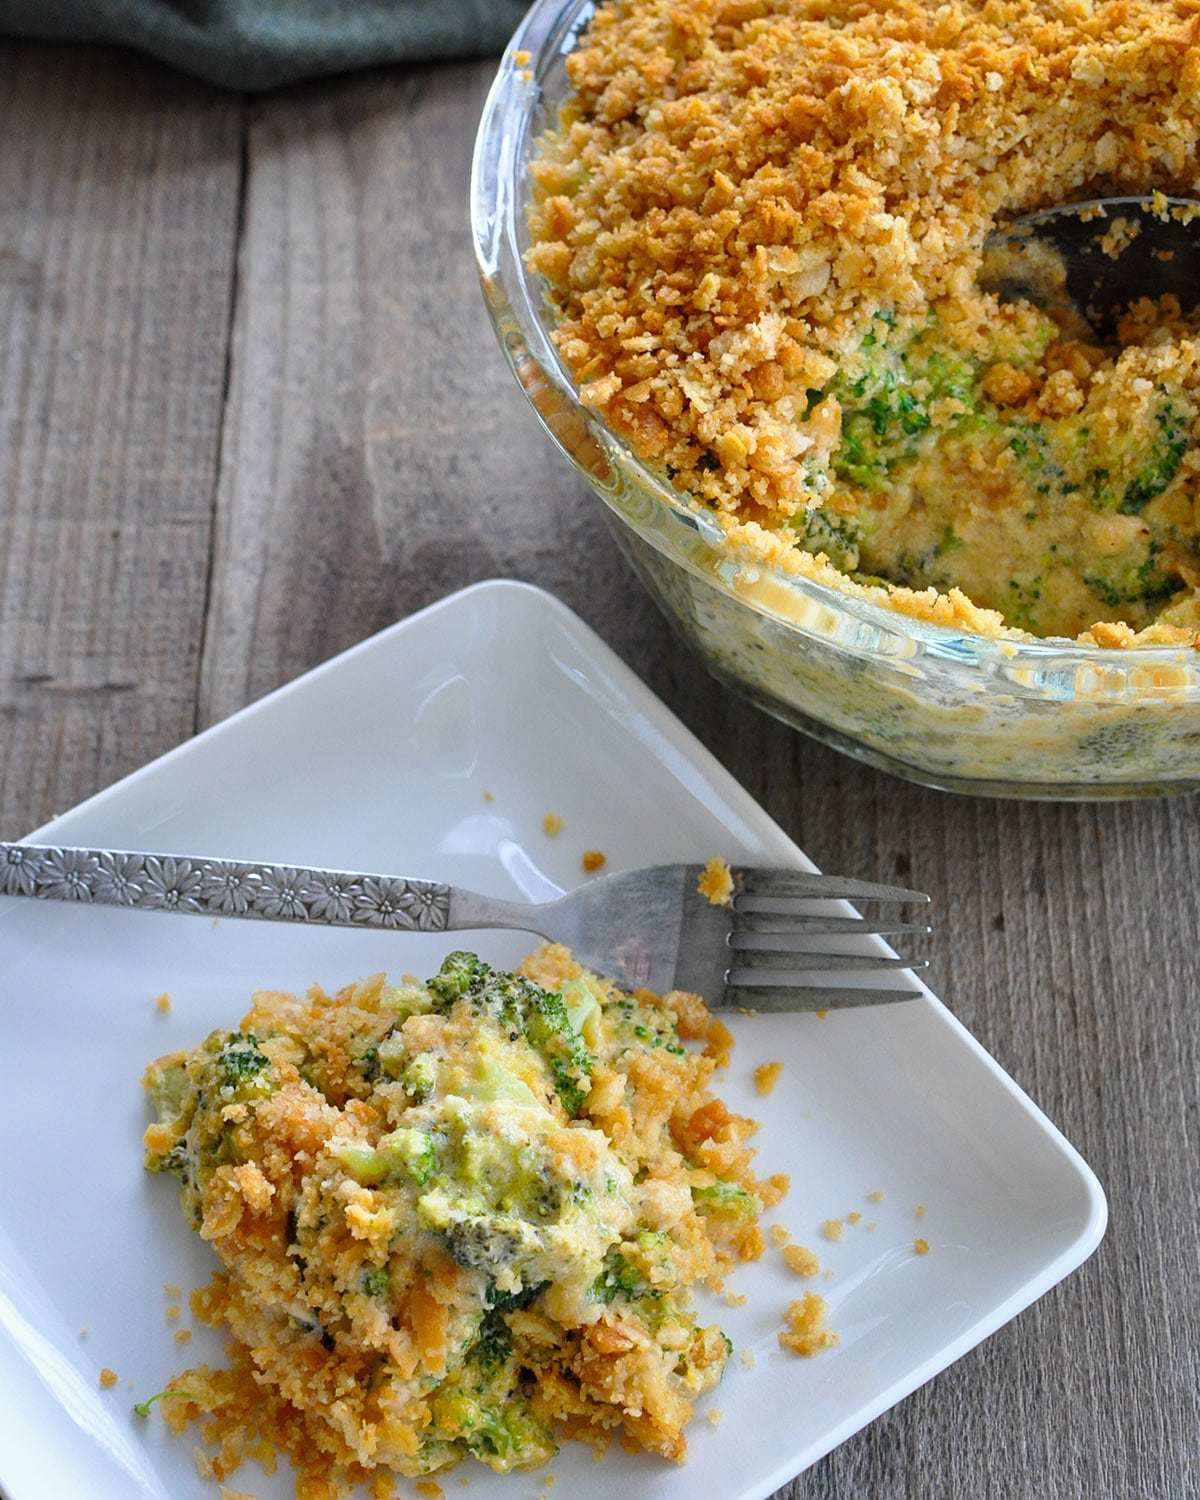 sour cream and cheese broccoli casserole on a white plate with a fork